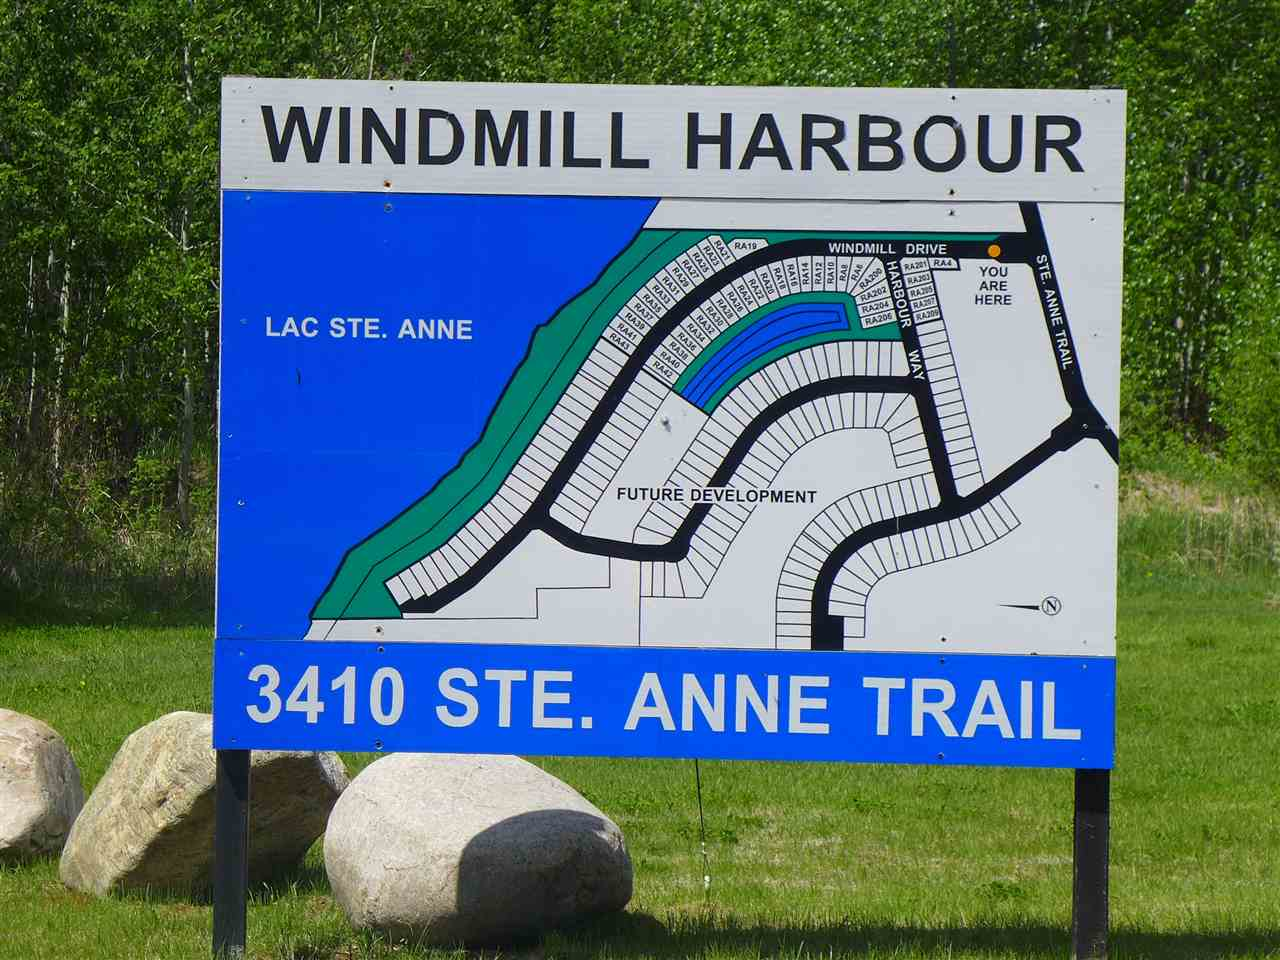 A SUPERB LOT IN THE GATED COMMUNITY OF WINDMILL HARBOUR ON THE SOUTHWEST SHORE OF LAC STE ANNE. Build your dream home near the water or have that weekend get-a way or just own a piece of Alberta. This is a very unique development with channels from the lake to the sub-division. This is a bareland condominium sub-division. Has community water/sewer.